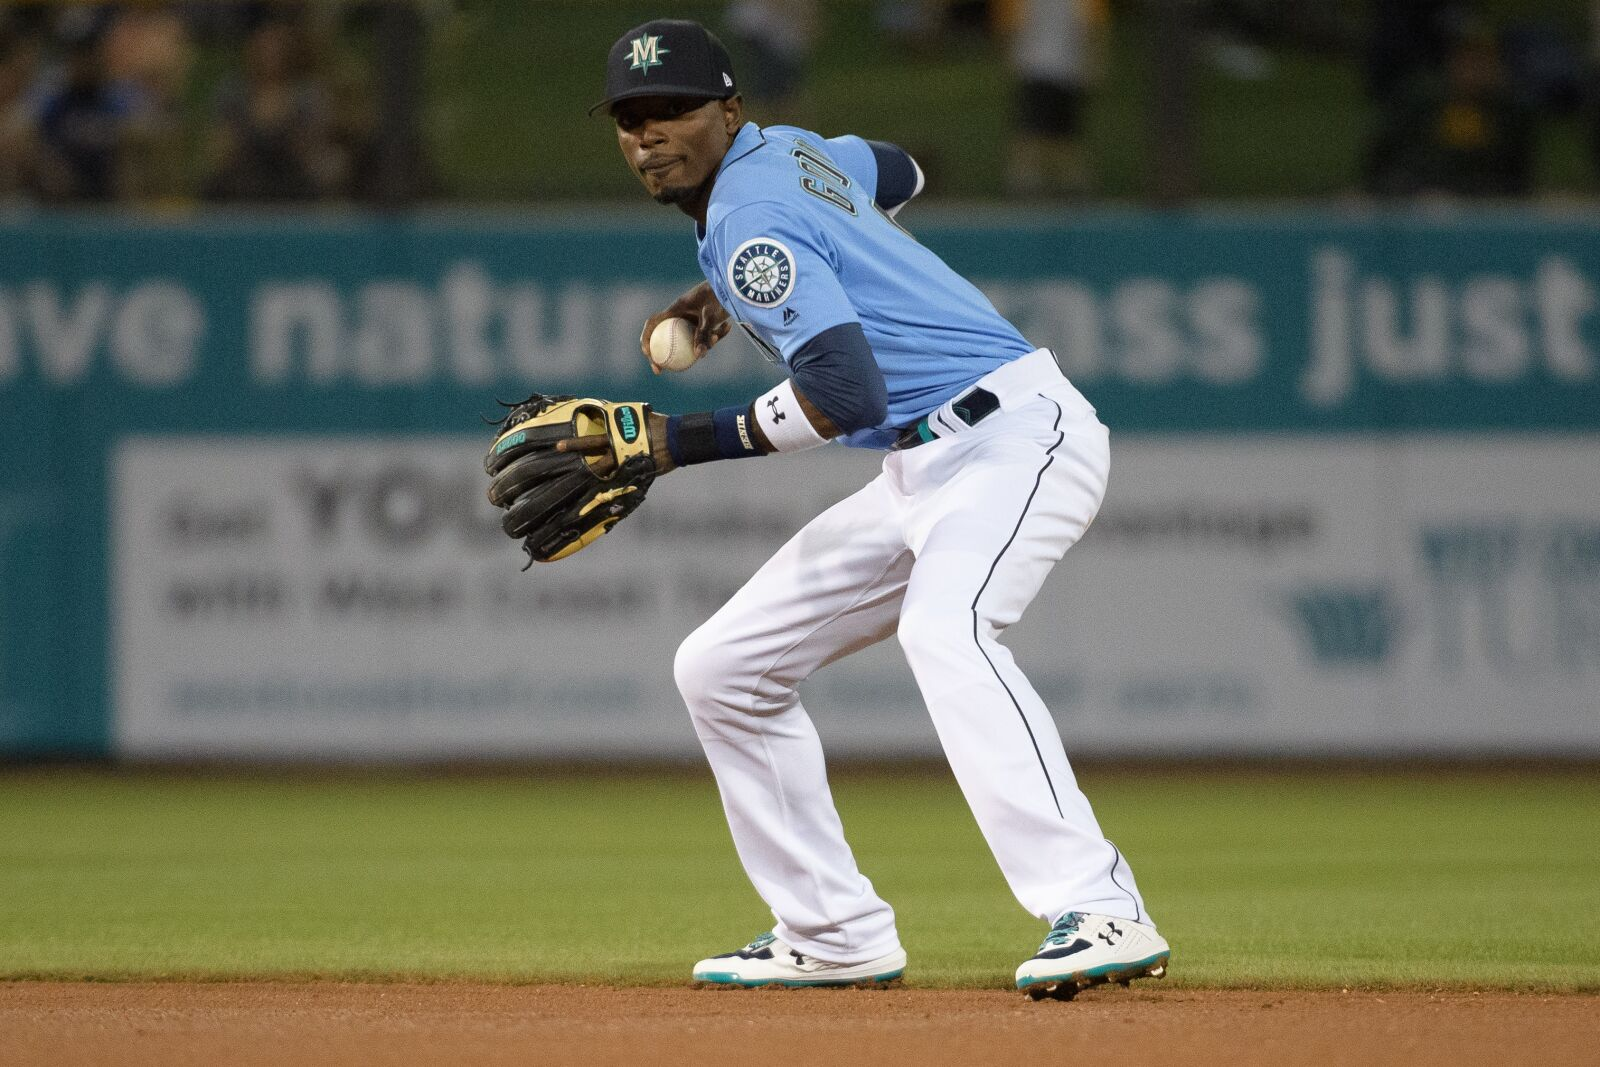 Seattle Mariners Could Go Bargain Shopping by Taking on Salary